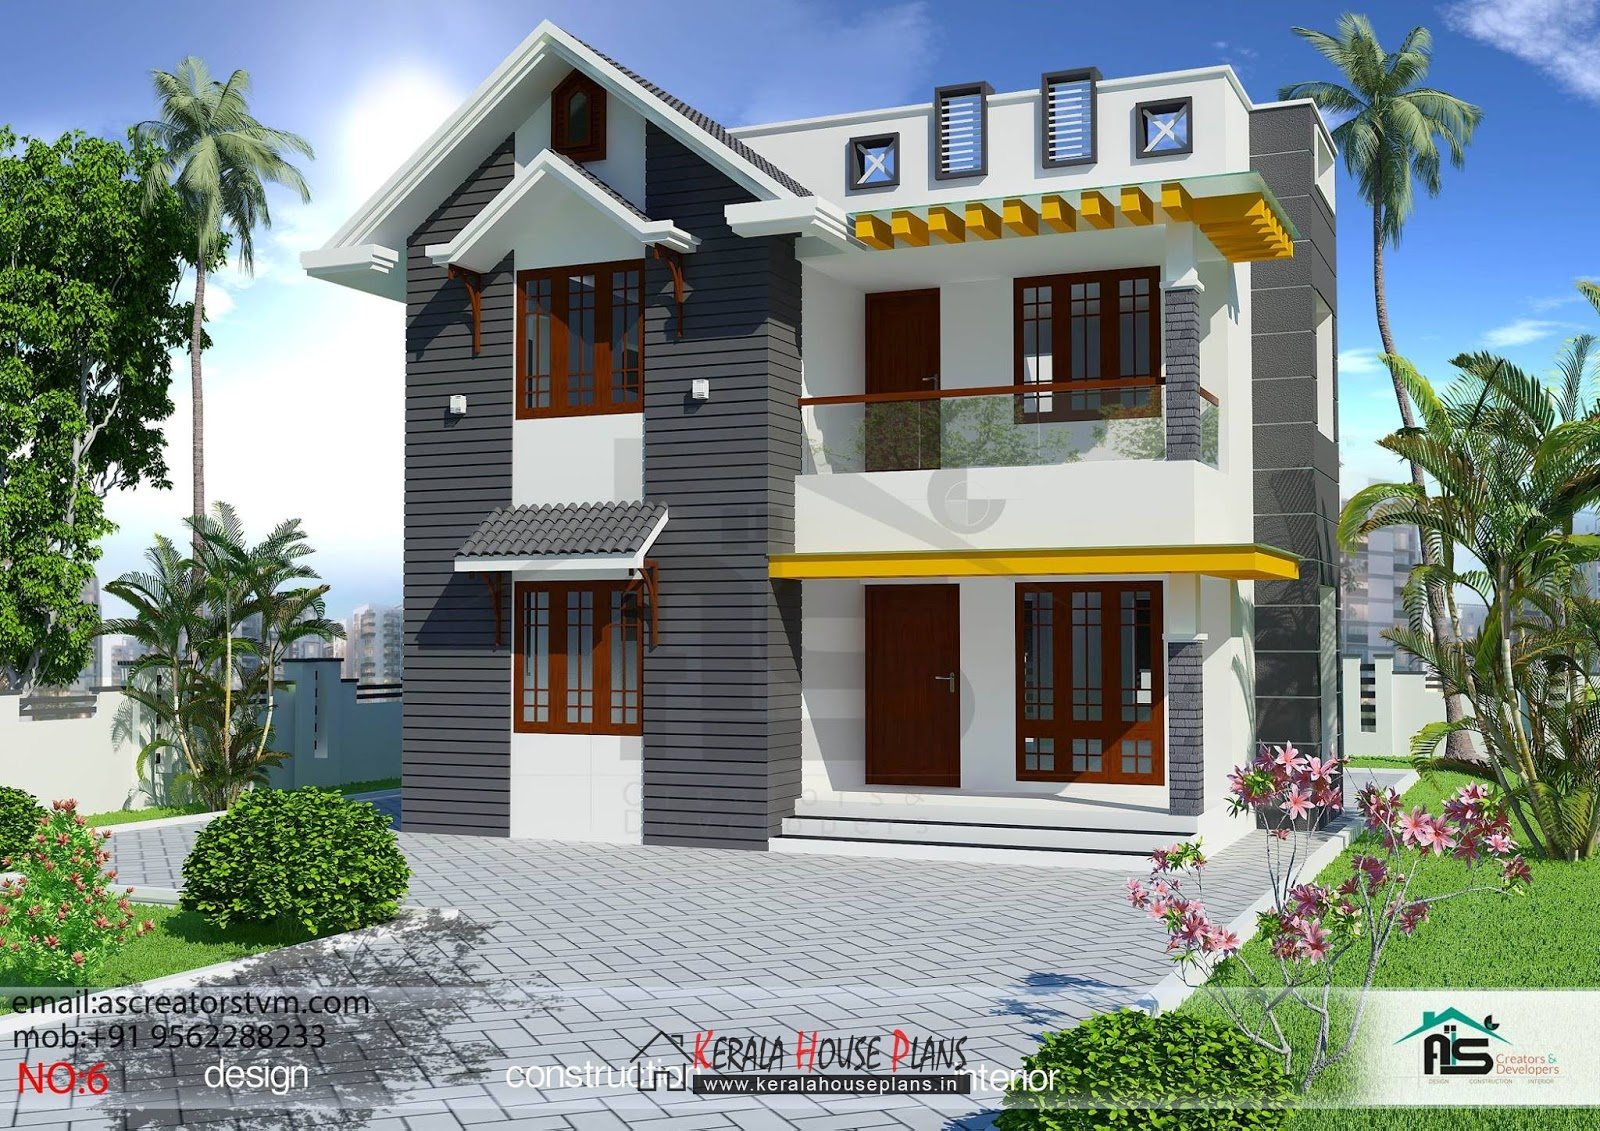 3 bedroom house plans in kerala double floor kerala for 2 floor house design